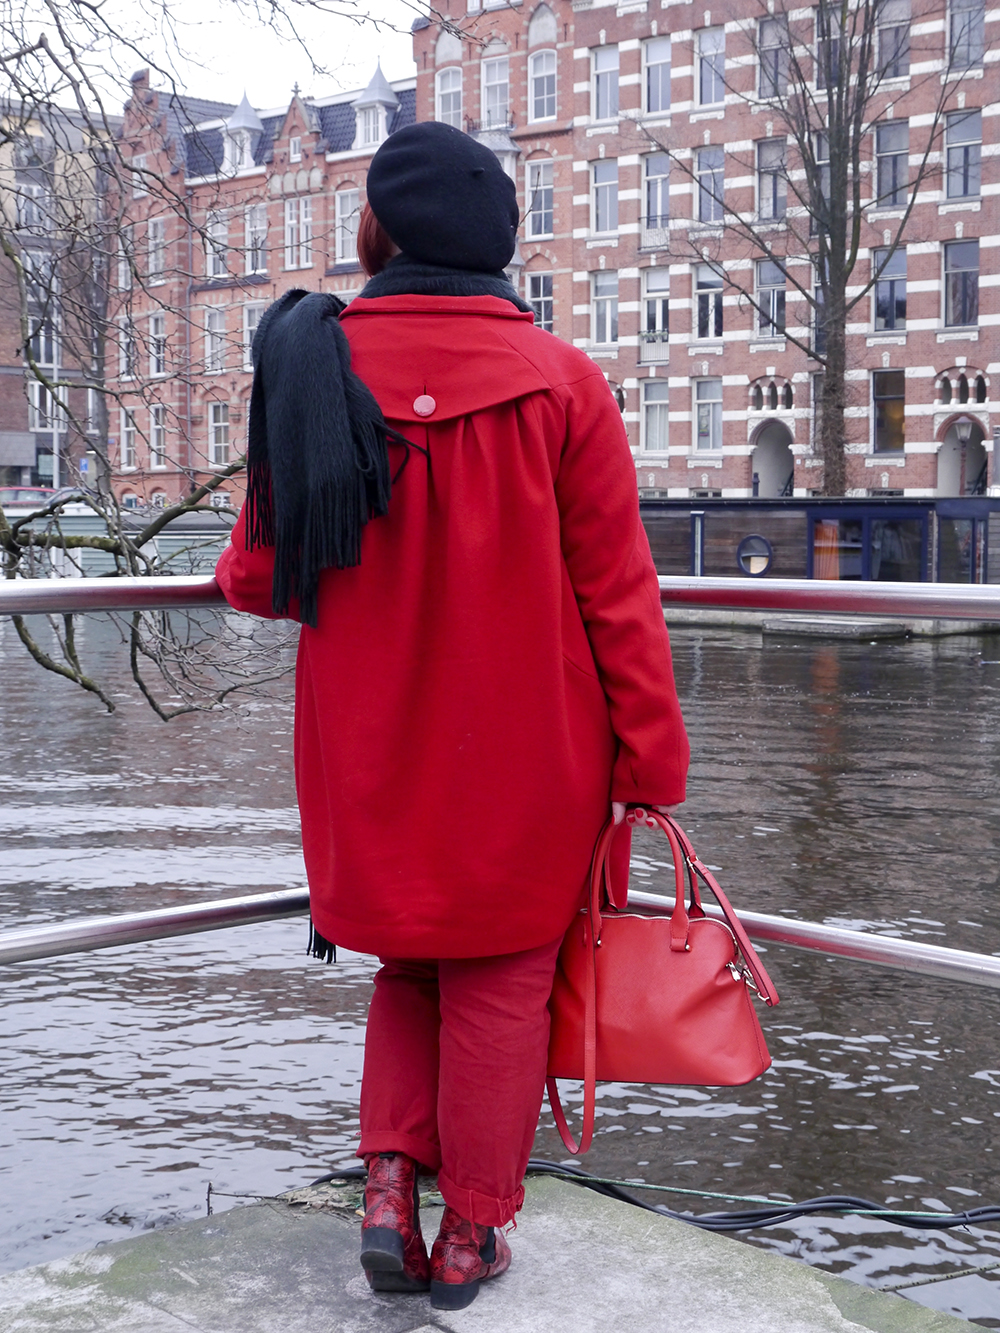 Bright and bold red outfit for a day in Amsterdam